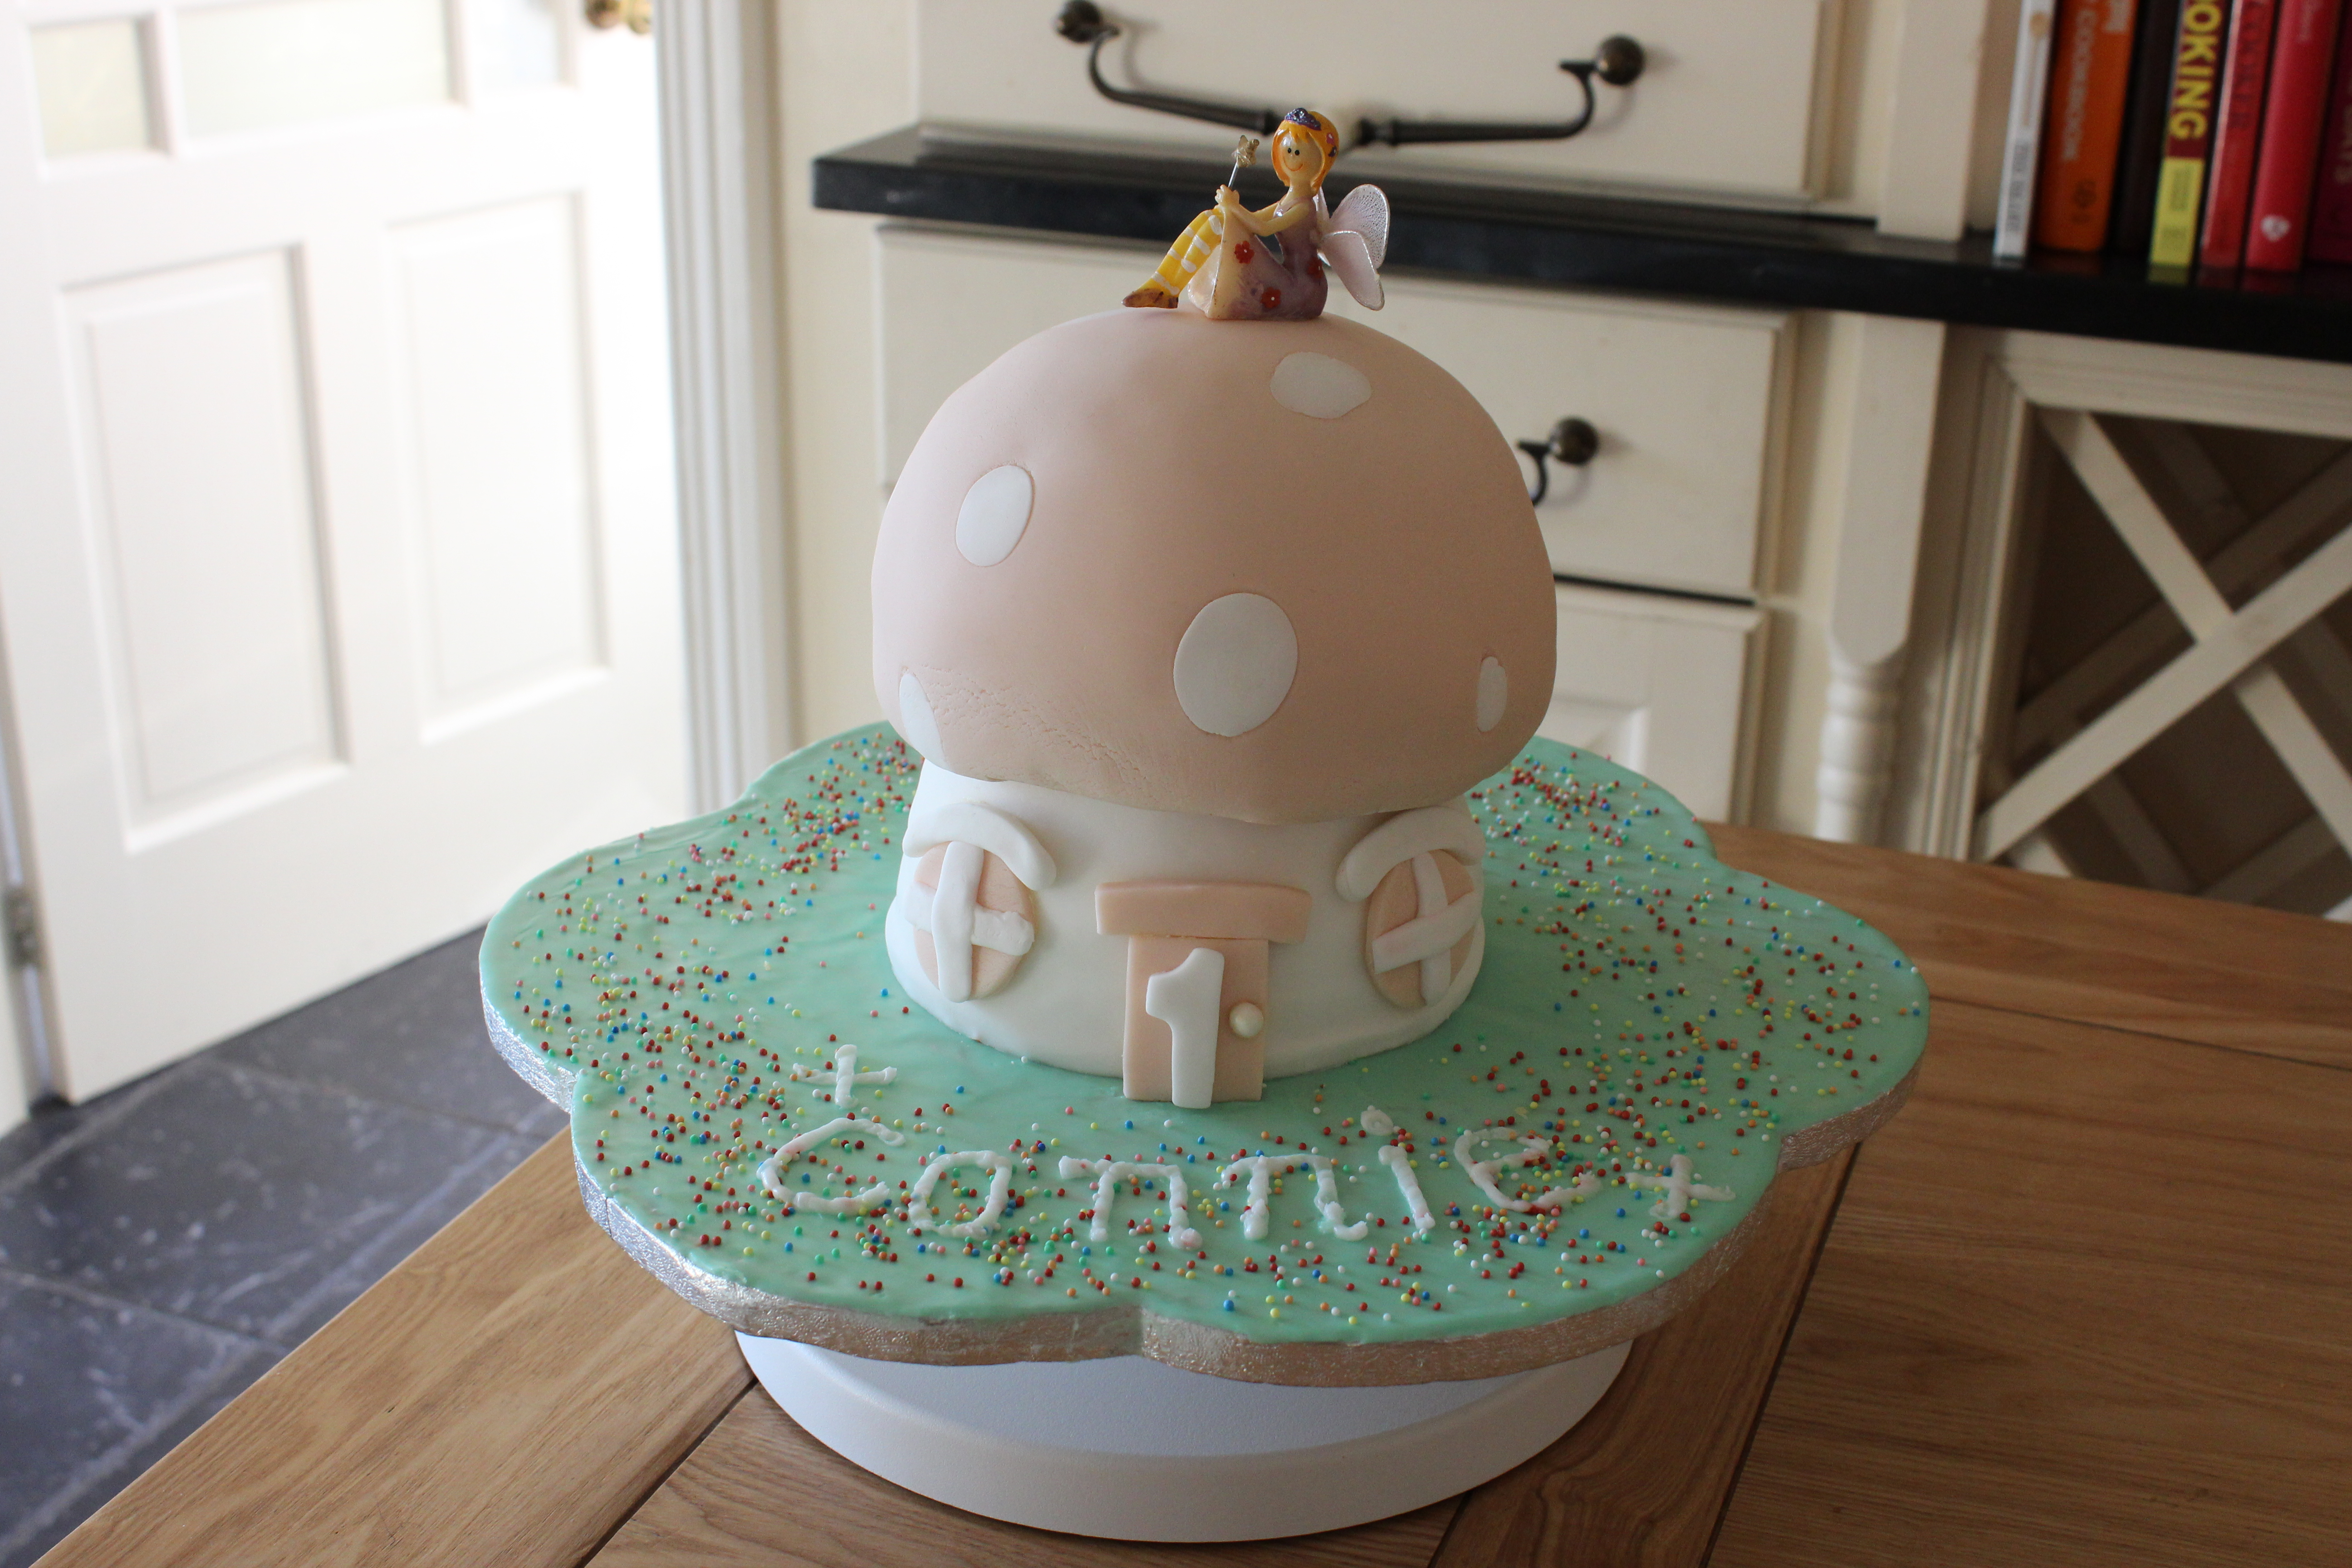 I M Not A Professional Cake Decorator Over 6 Years I Ve Improved My Skills Gradually To Be Able To Produce A Cake That Although Not Of Exceptionally High